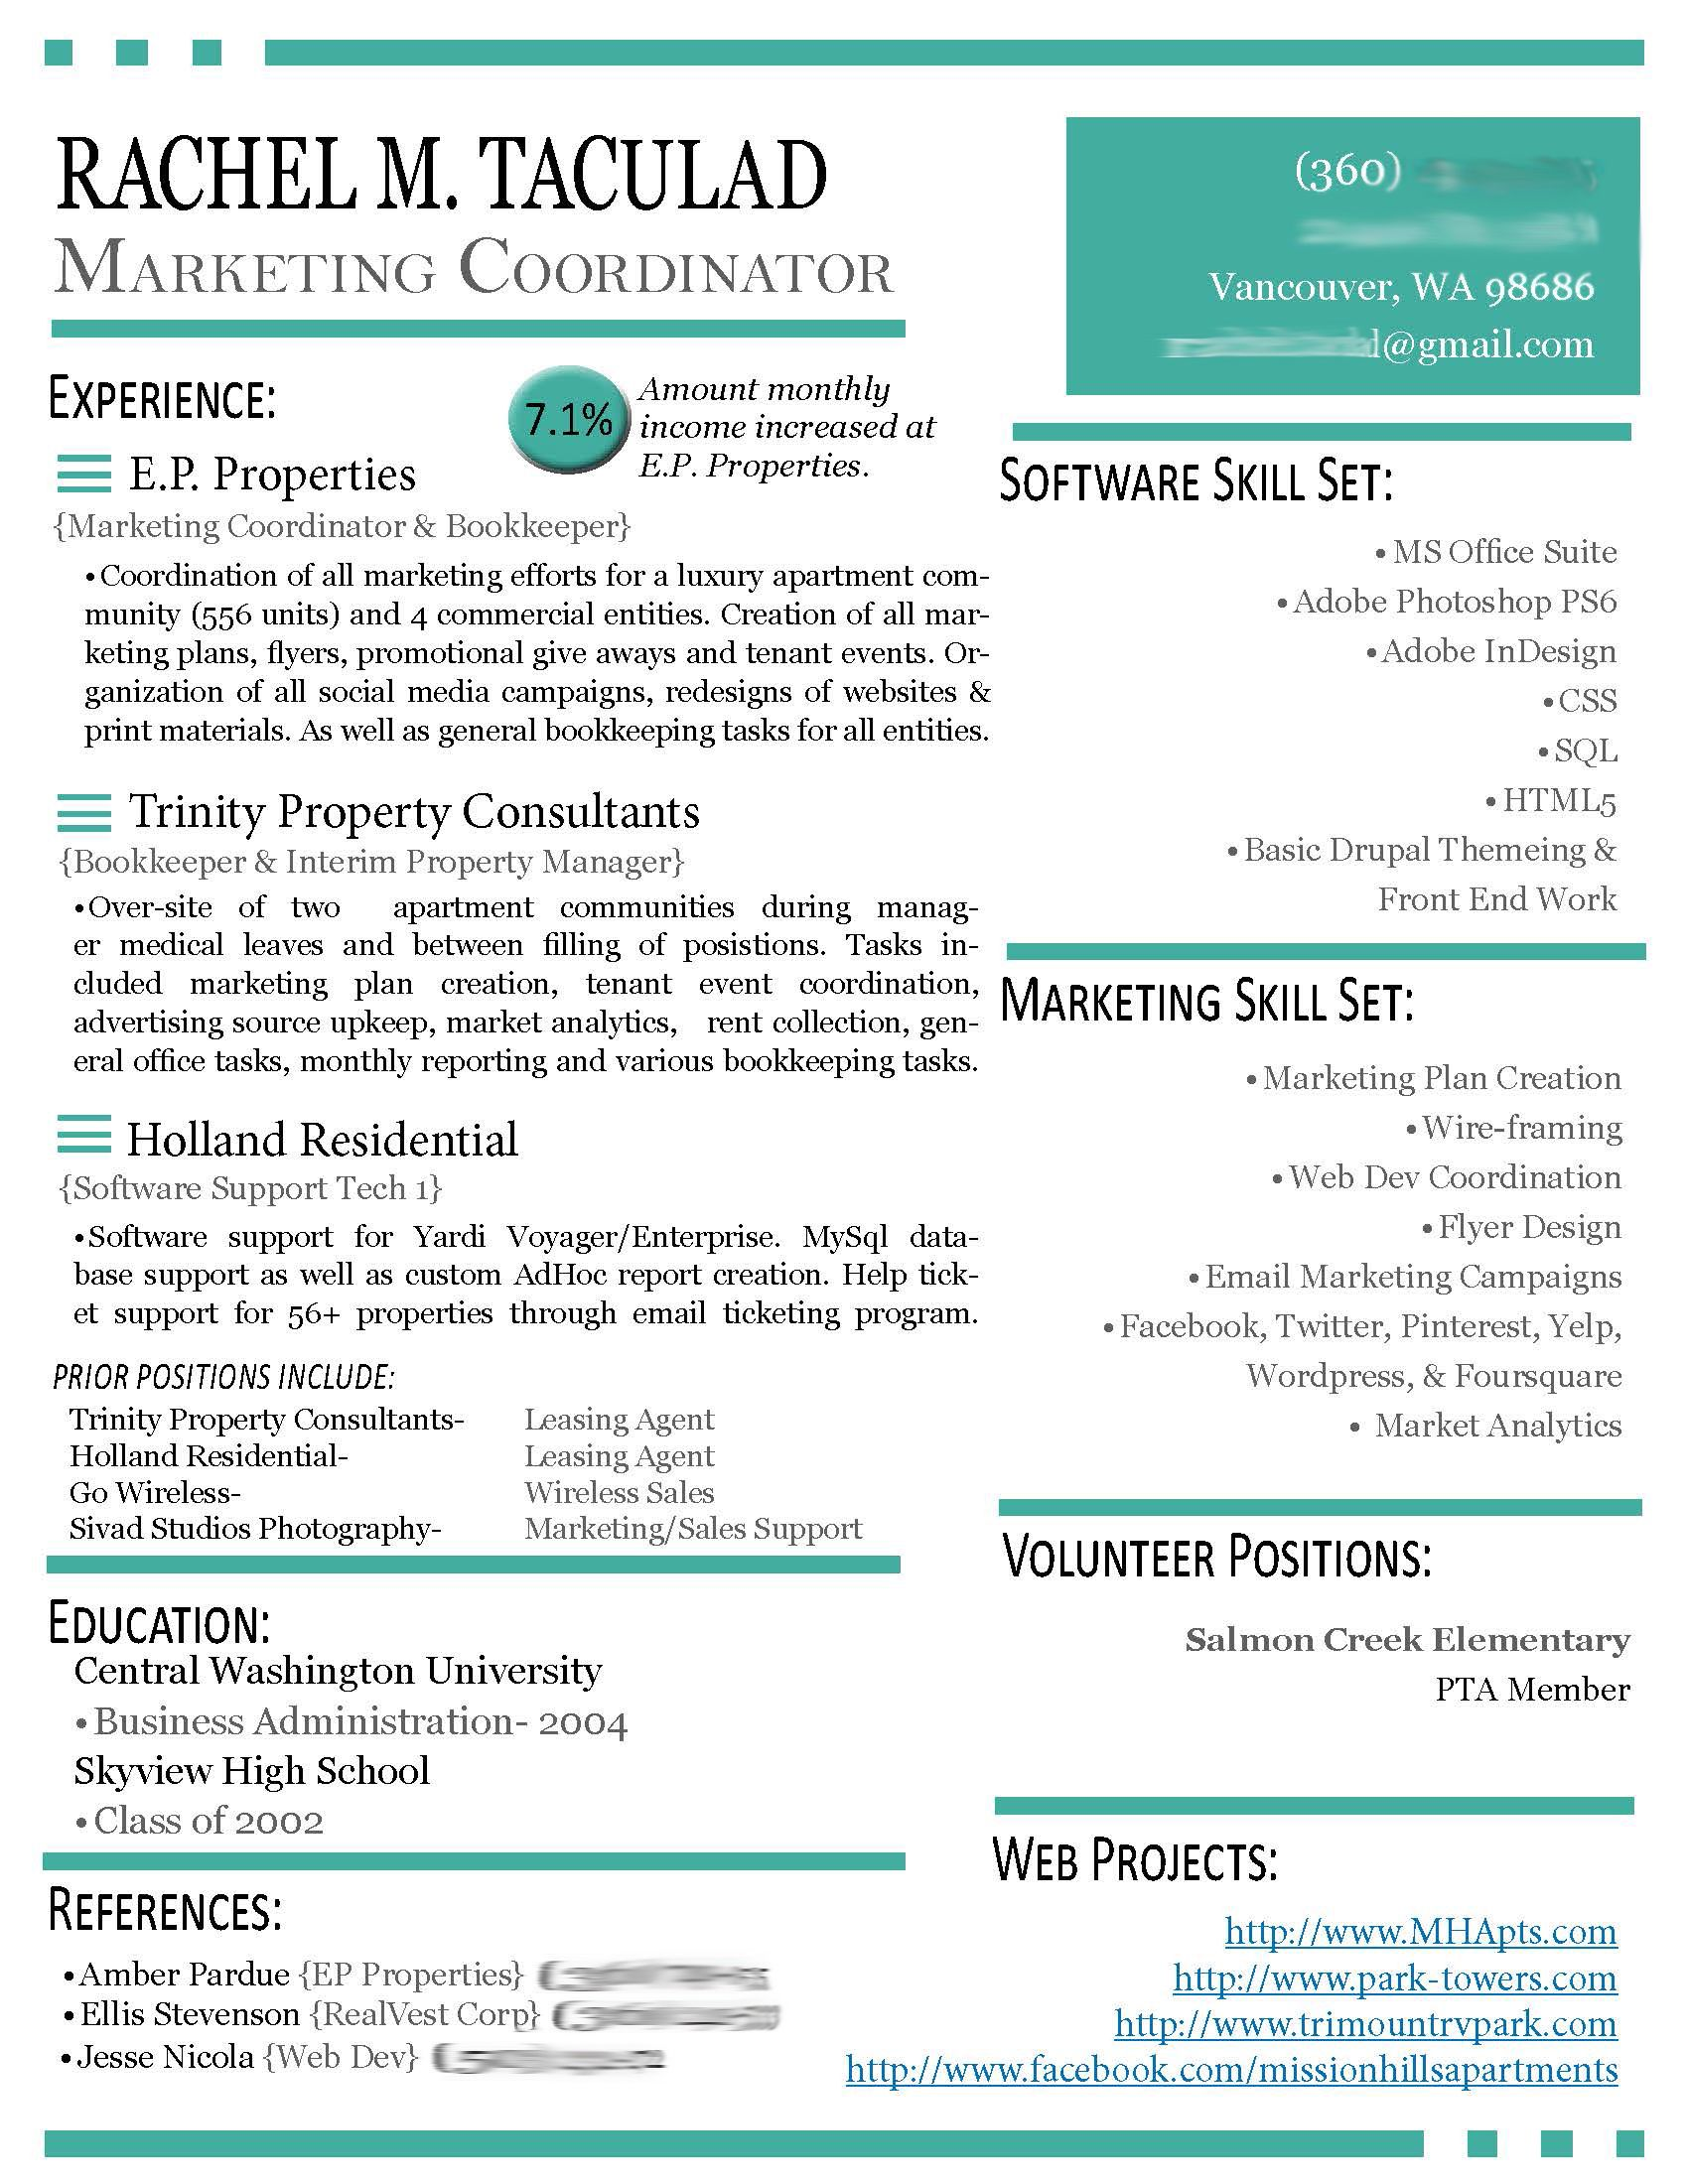 Opposenewapstandardsus  Outstanding  Images About Work Stuff On Pinterest  Resume Professional  With Interesting  Images About Work Stuff On Pinterest  Resume Professional Resume Template And Resume Templates With Attractive Make A Free Resume Also What To Put In A Resume In Addition Skills Resume Examples And Food Service Resume As Well As How To Do A Resume For A Job Additionally Resume Builder Template From Pinterestcom With Opposenewapstandardsus  Interesting  Images About Work Stuff On Pinterest  Resume Professional  With Attractive  Images About Work Stuff On Pinterest  Resume Professional Resume Template And Resume Templates And Outstanding Make A Free Resume Also What To Put In A Resume In Addition Skills Resume Examples From Pinterestcom